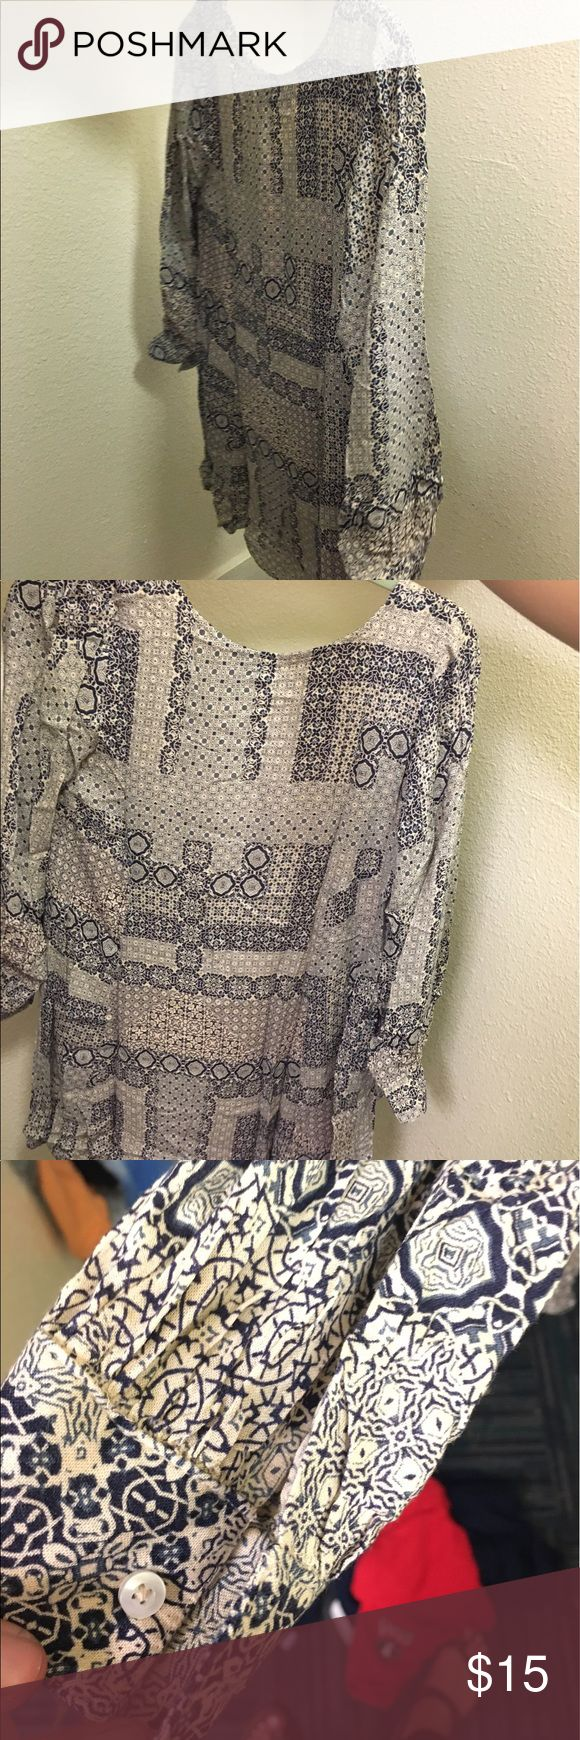 Abercrombie and Fitch dress WORN TWICE!!  Cute Abercrombie and Fitch dress size S. Abercrombie & Fitch Dresses Mini